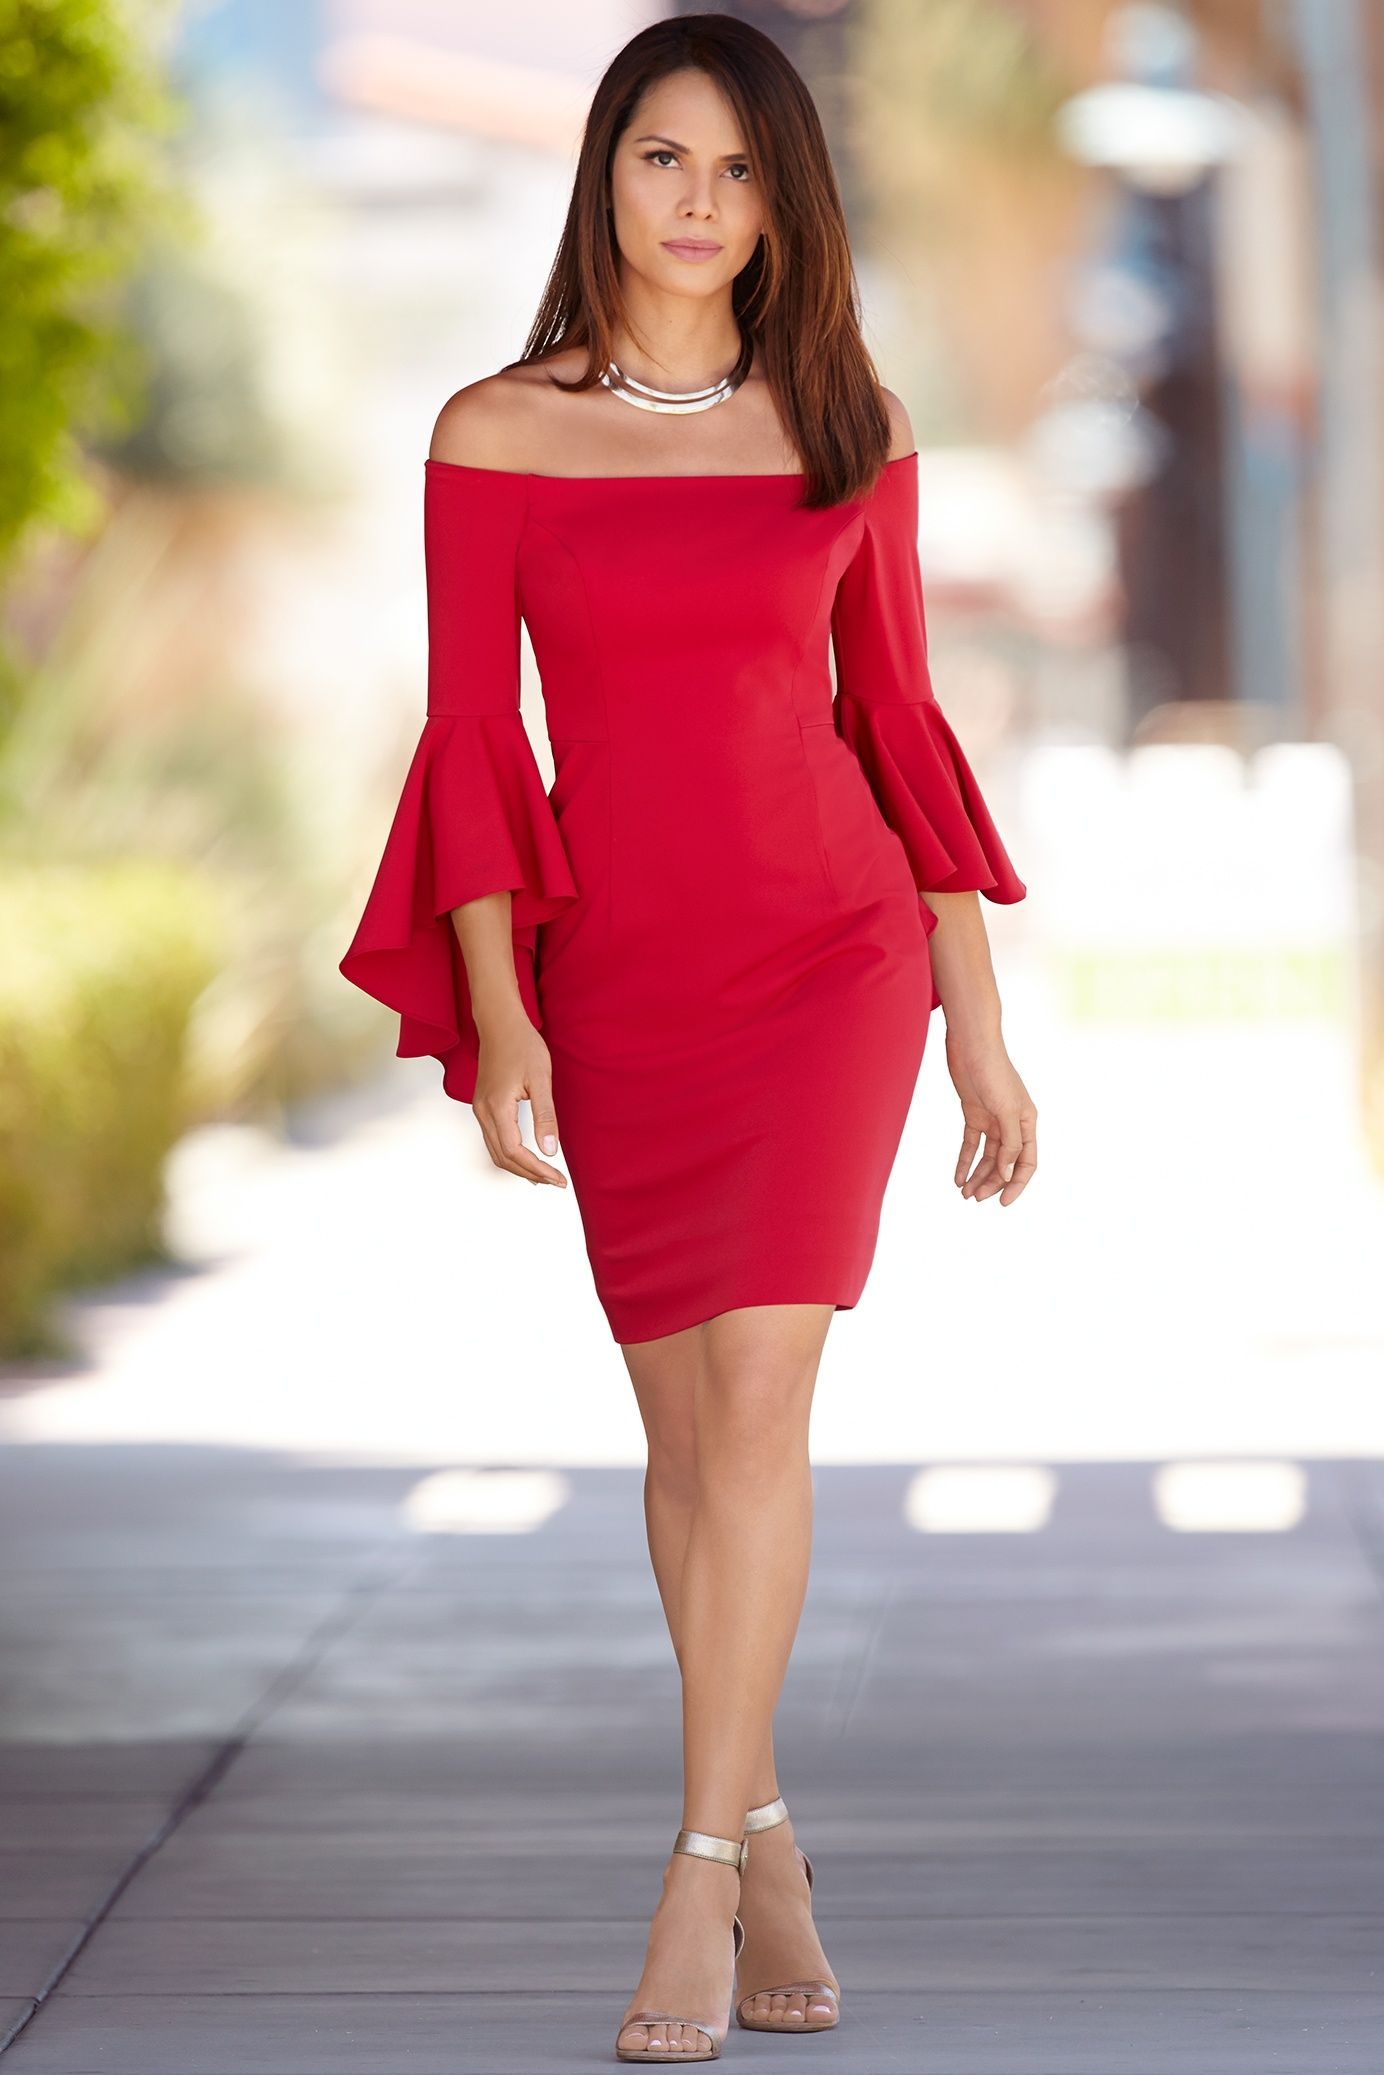 47+ Off the shoulder dress with sleeves ideas ideas